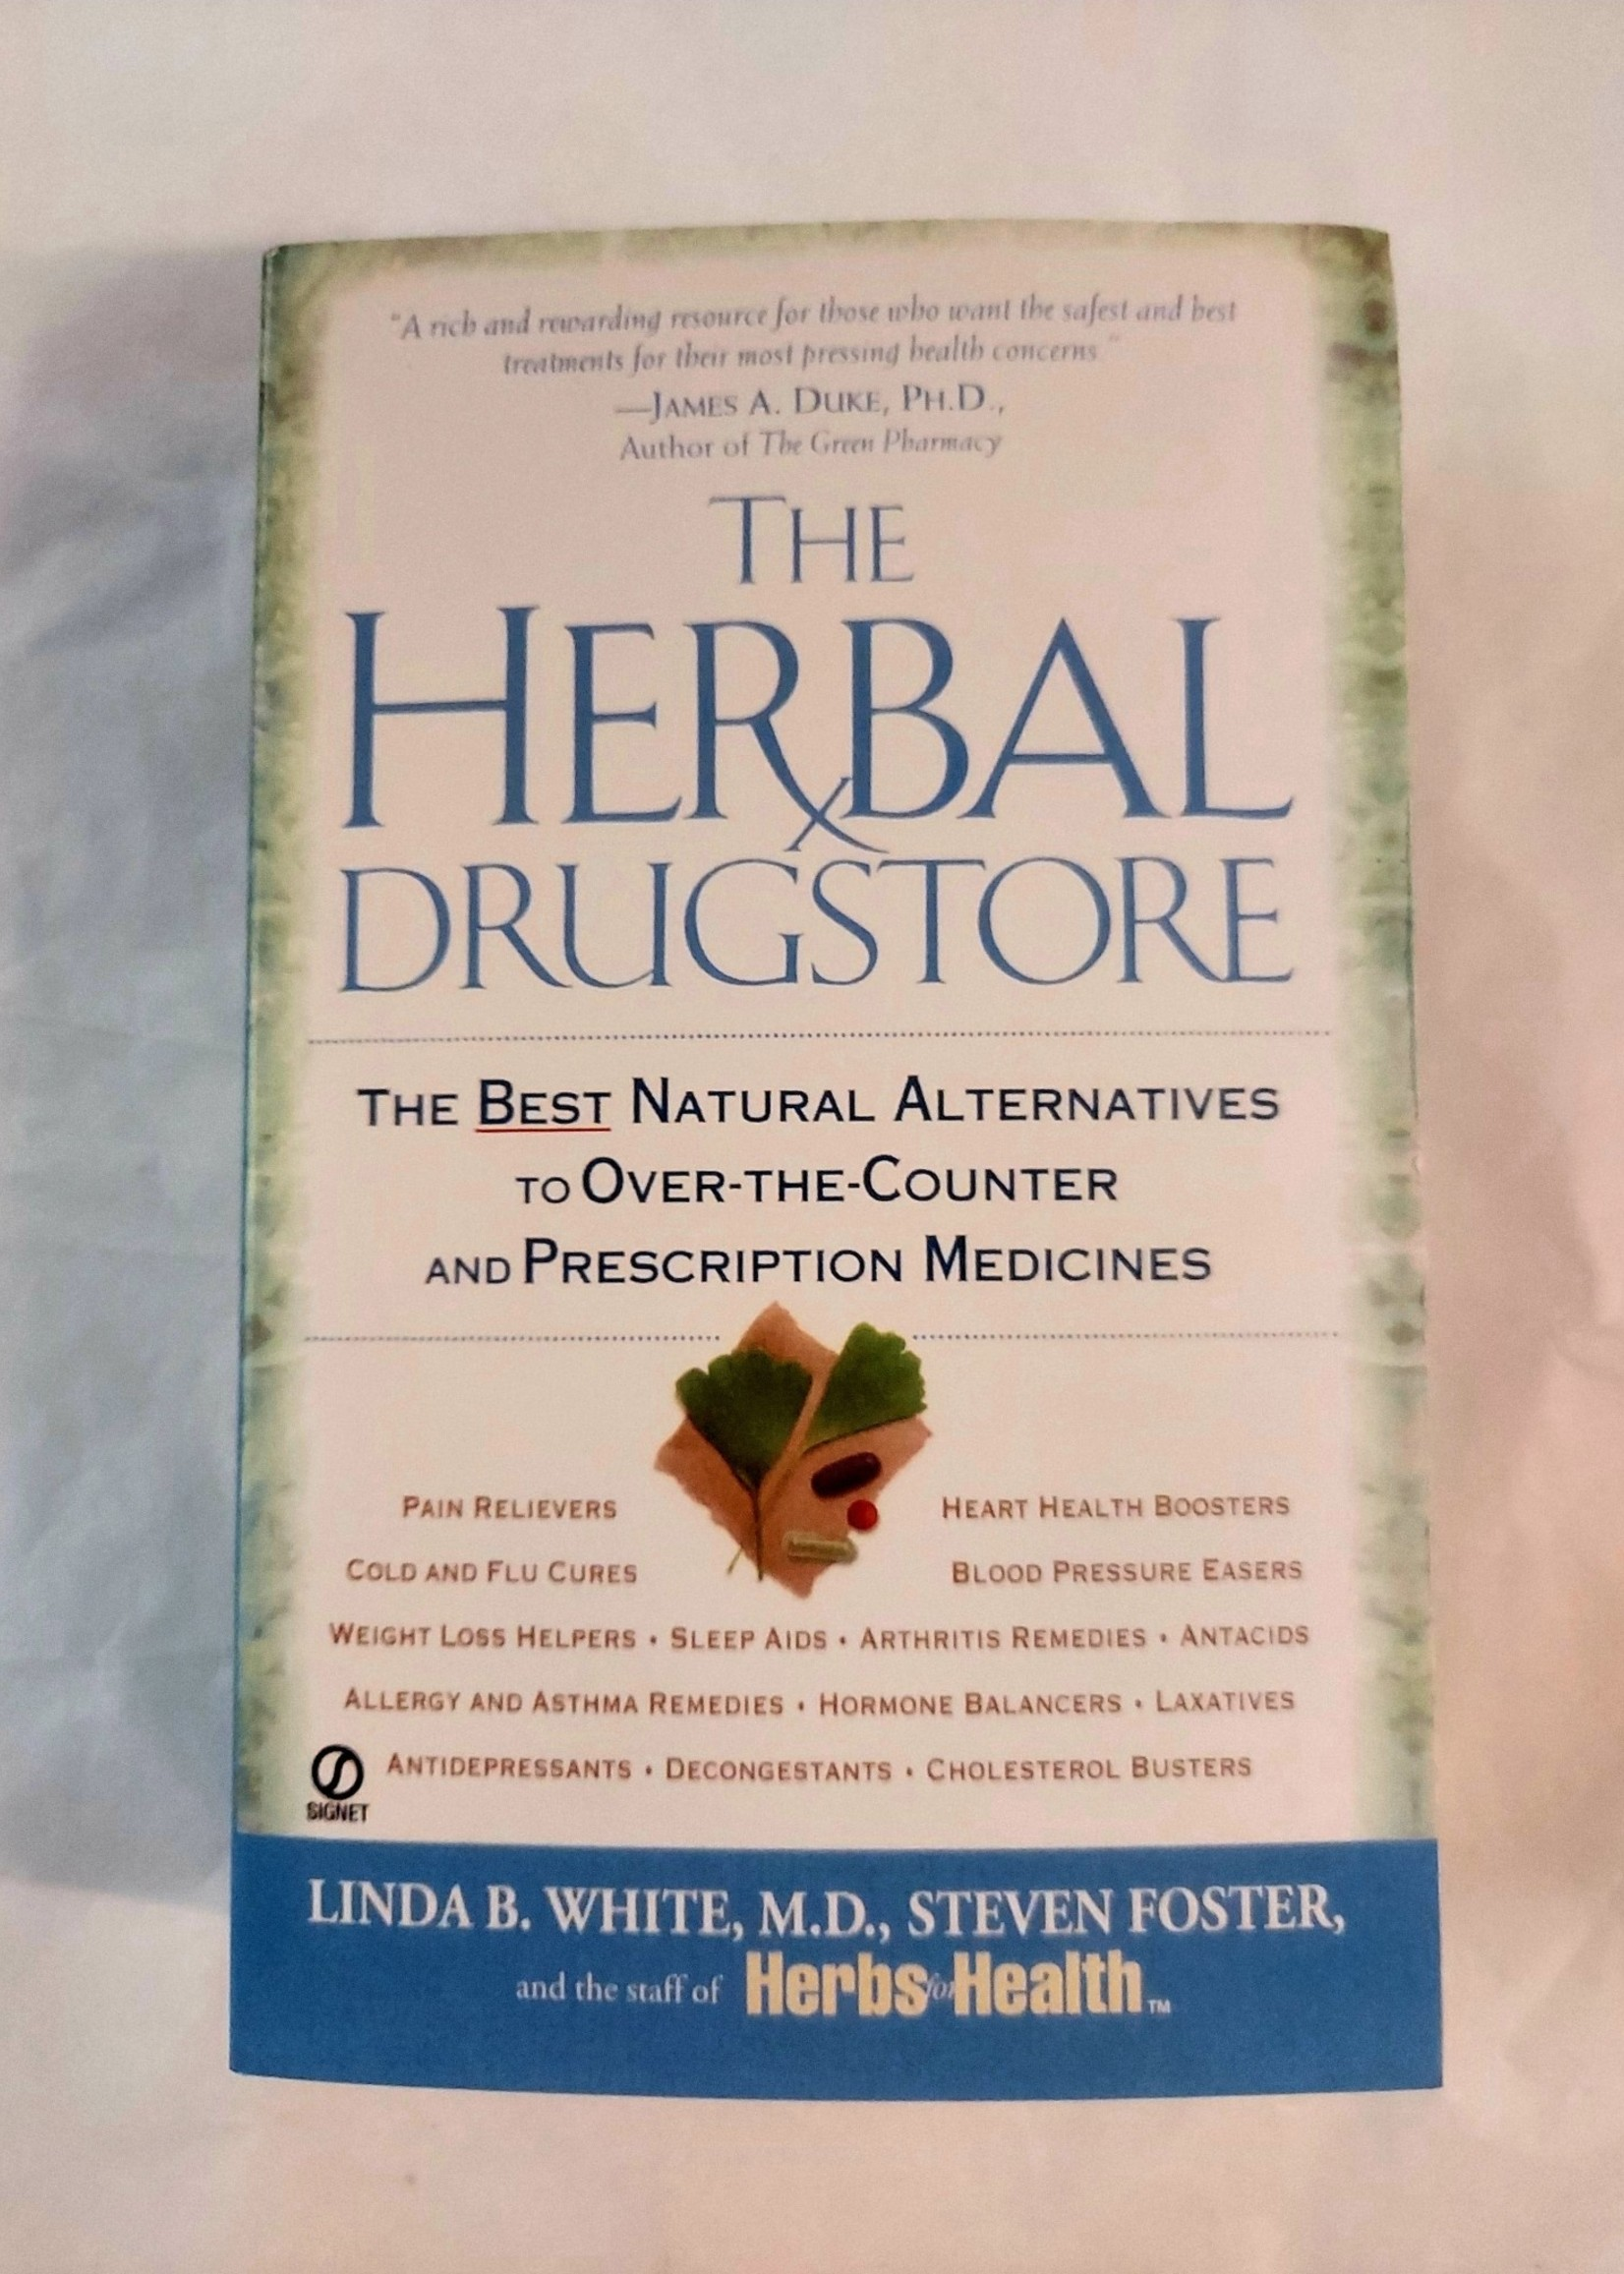 The Herbal Drugstore-By LINDA B. WHITE, STEVEN FOSTER and THE STAFF OF HERBS FOR HEALTH